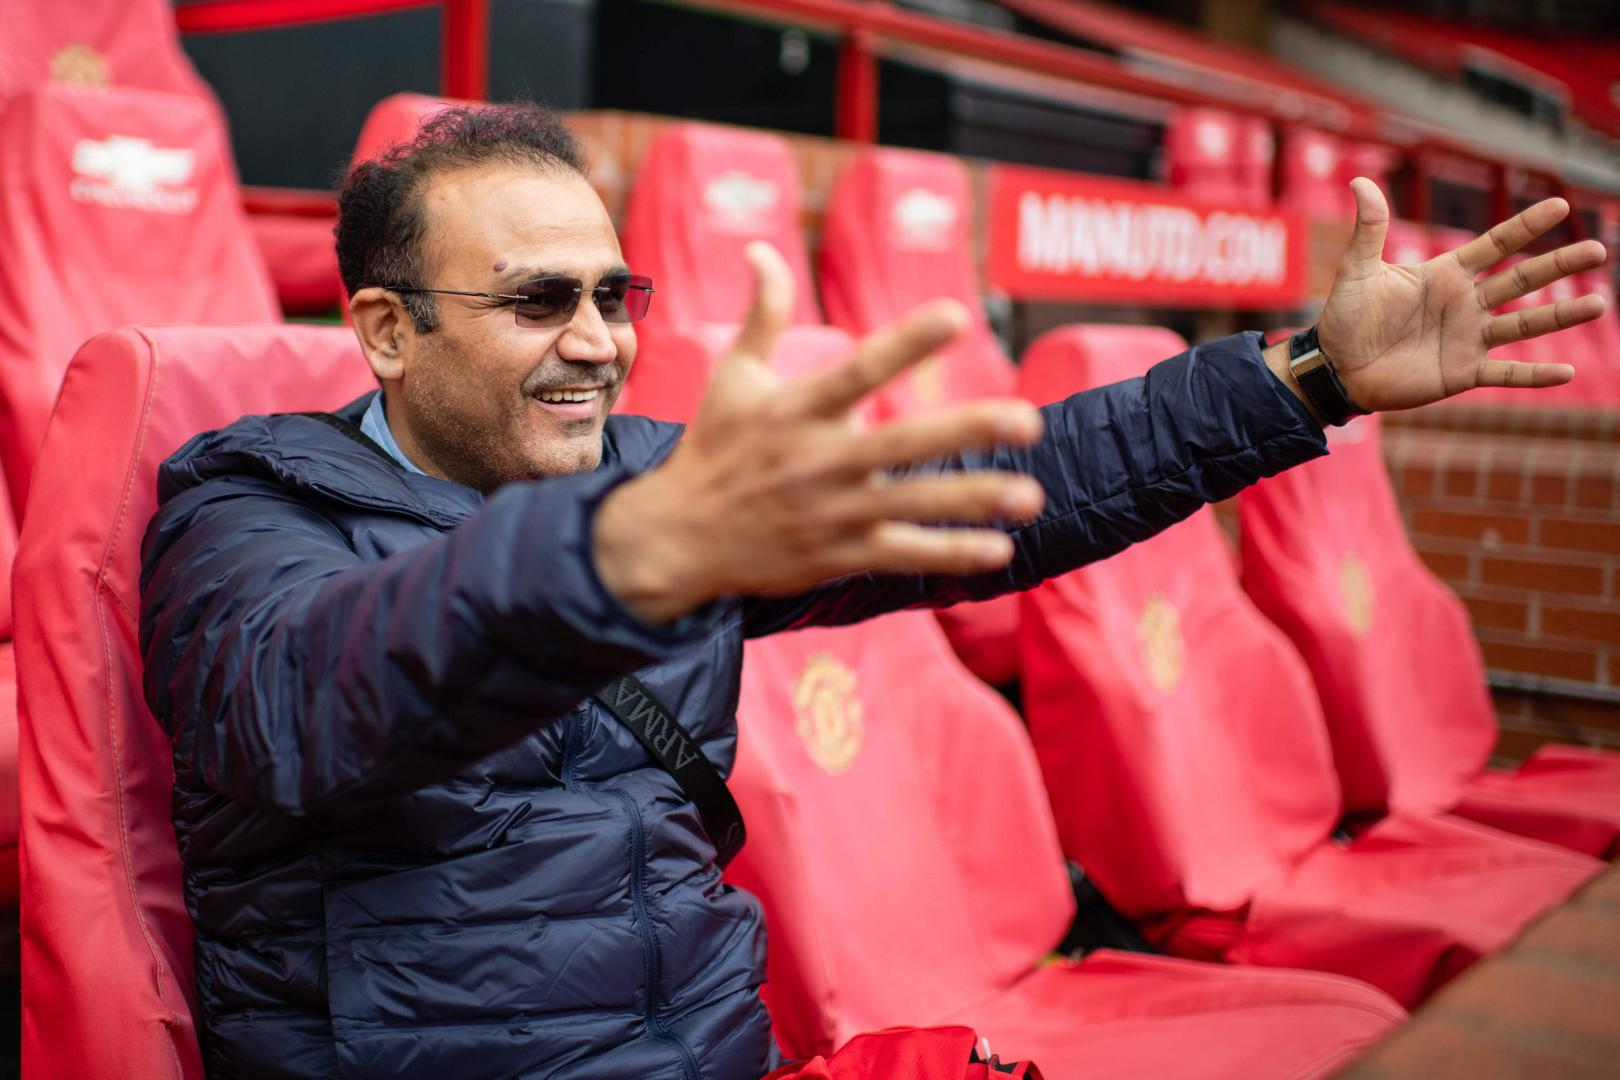 India cricket legend Virender Sehwag at Old Trafford on the Stadium Tour.